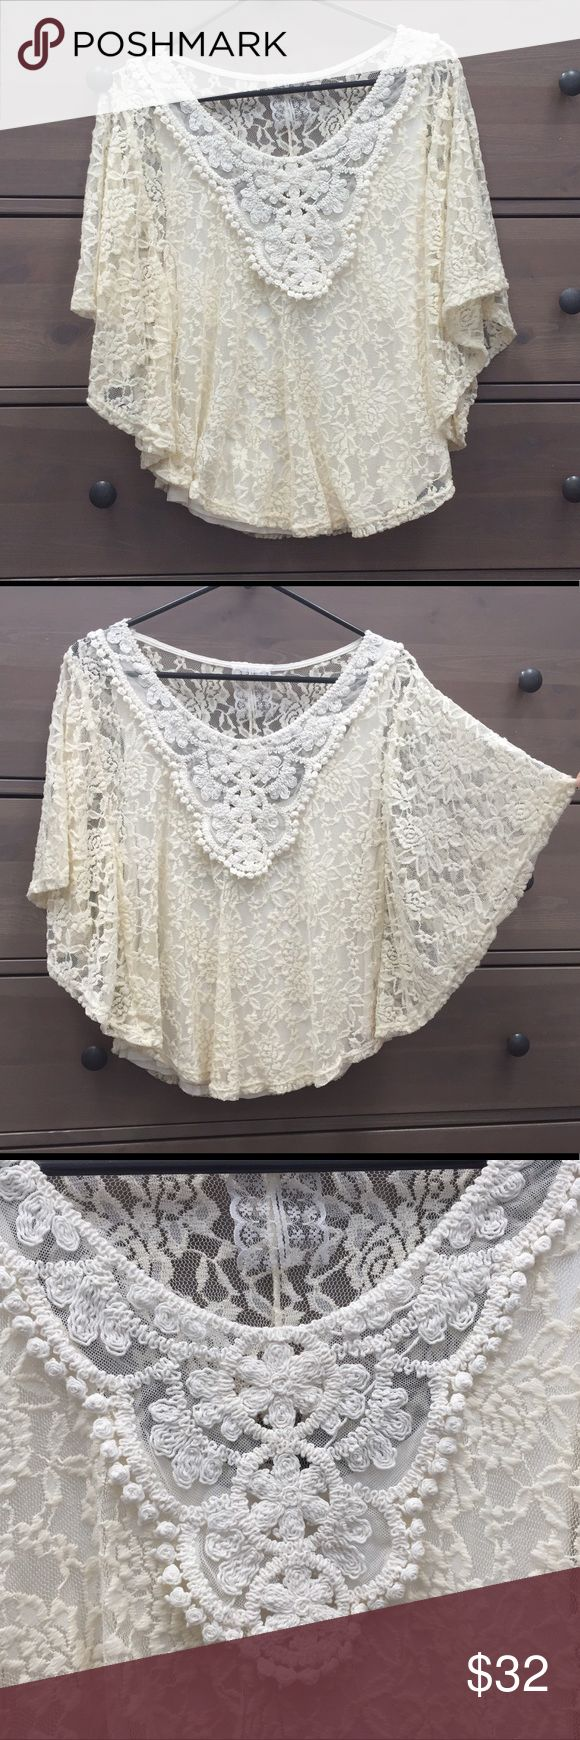 """Lace & Crochet Dolman Batwing Sleeve Top Vintage feel. The lace coloring is more bone and the crochet is a little lighter cream. The tag has been removed but I'm almost 100% sure I bought this a while back at Free People. From shoulder to waist is about 23"""" so it's a small. Free People Tops Tunics"""